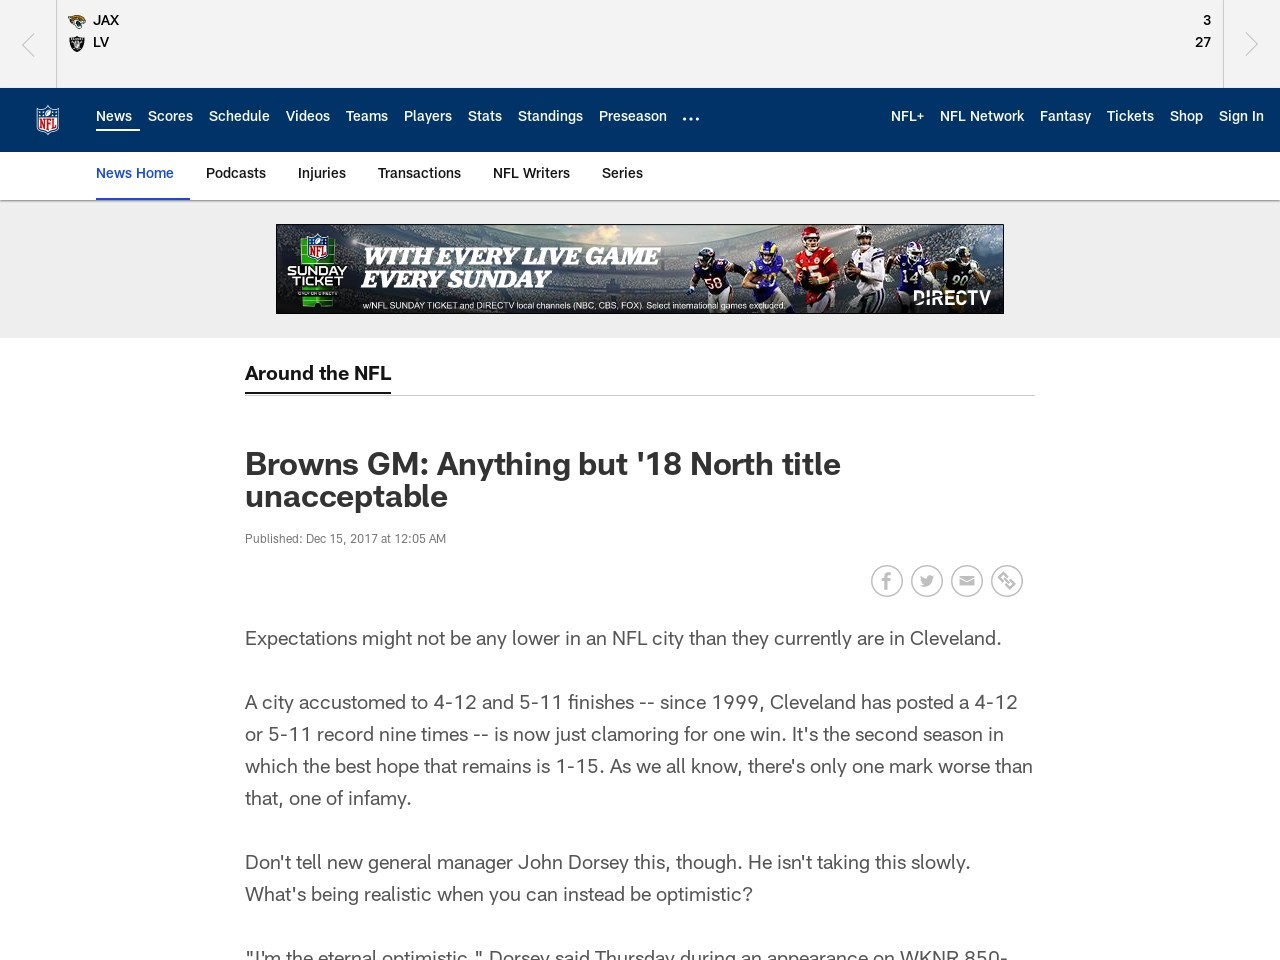 Browns GM: Anything but '18 North title unacceptable